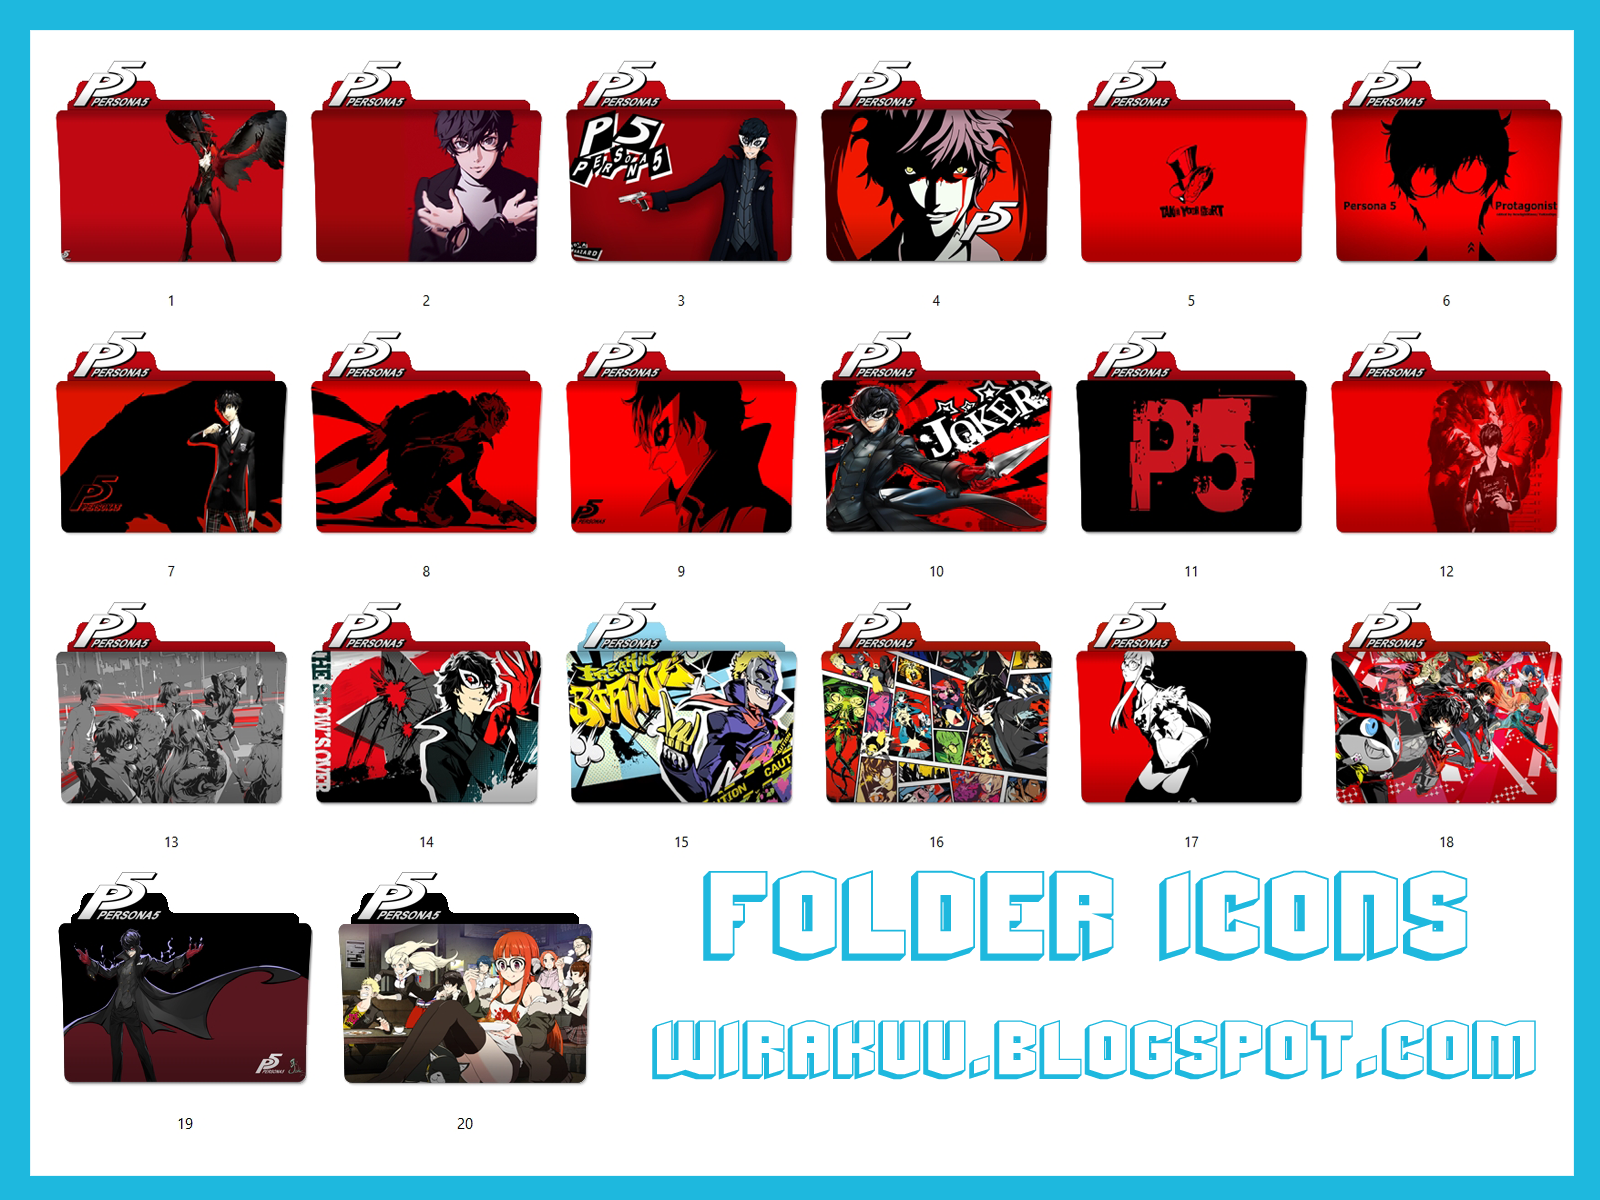 20 Folder Icons Game Persona 5 (Windows 7, 8, 10) - Wirakuu